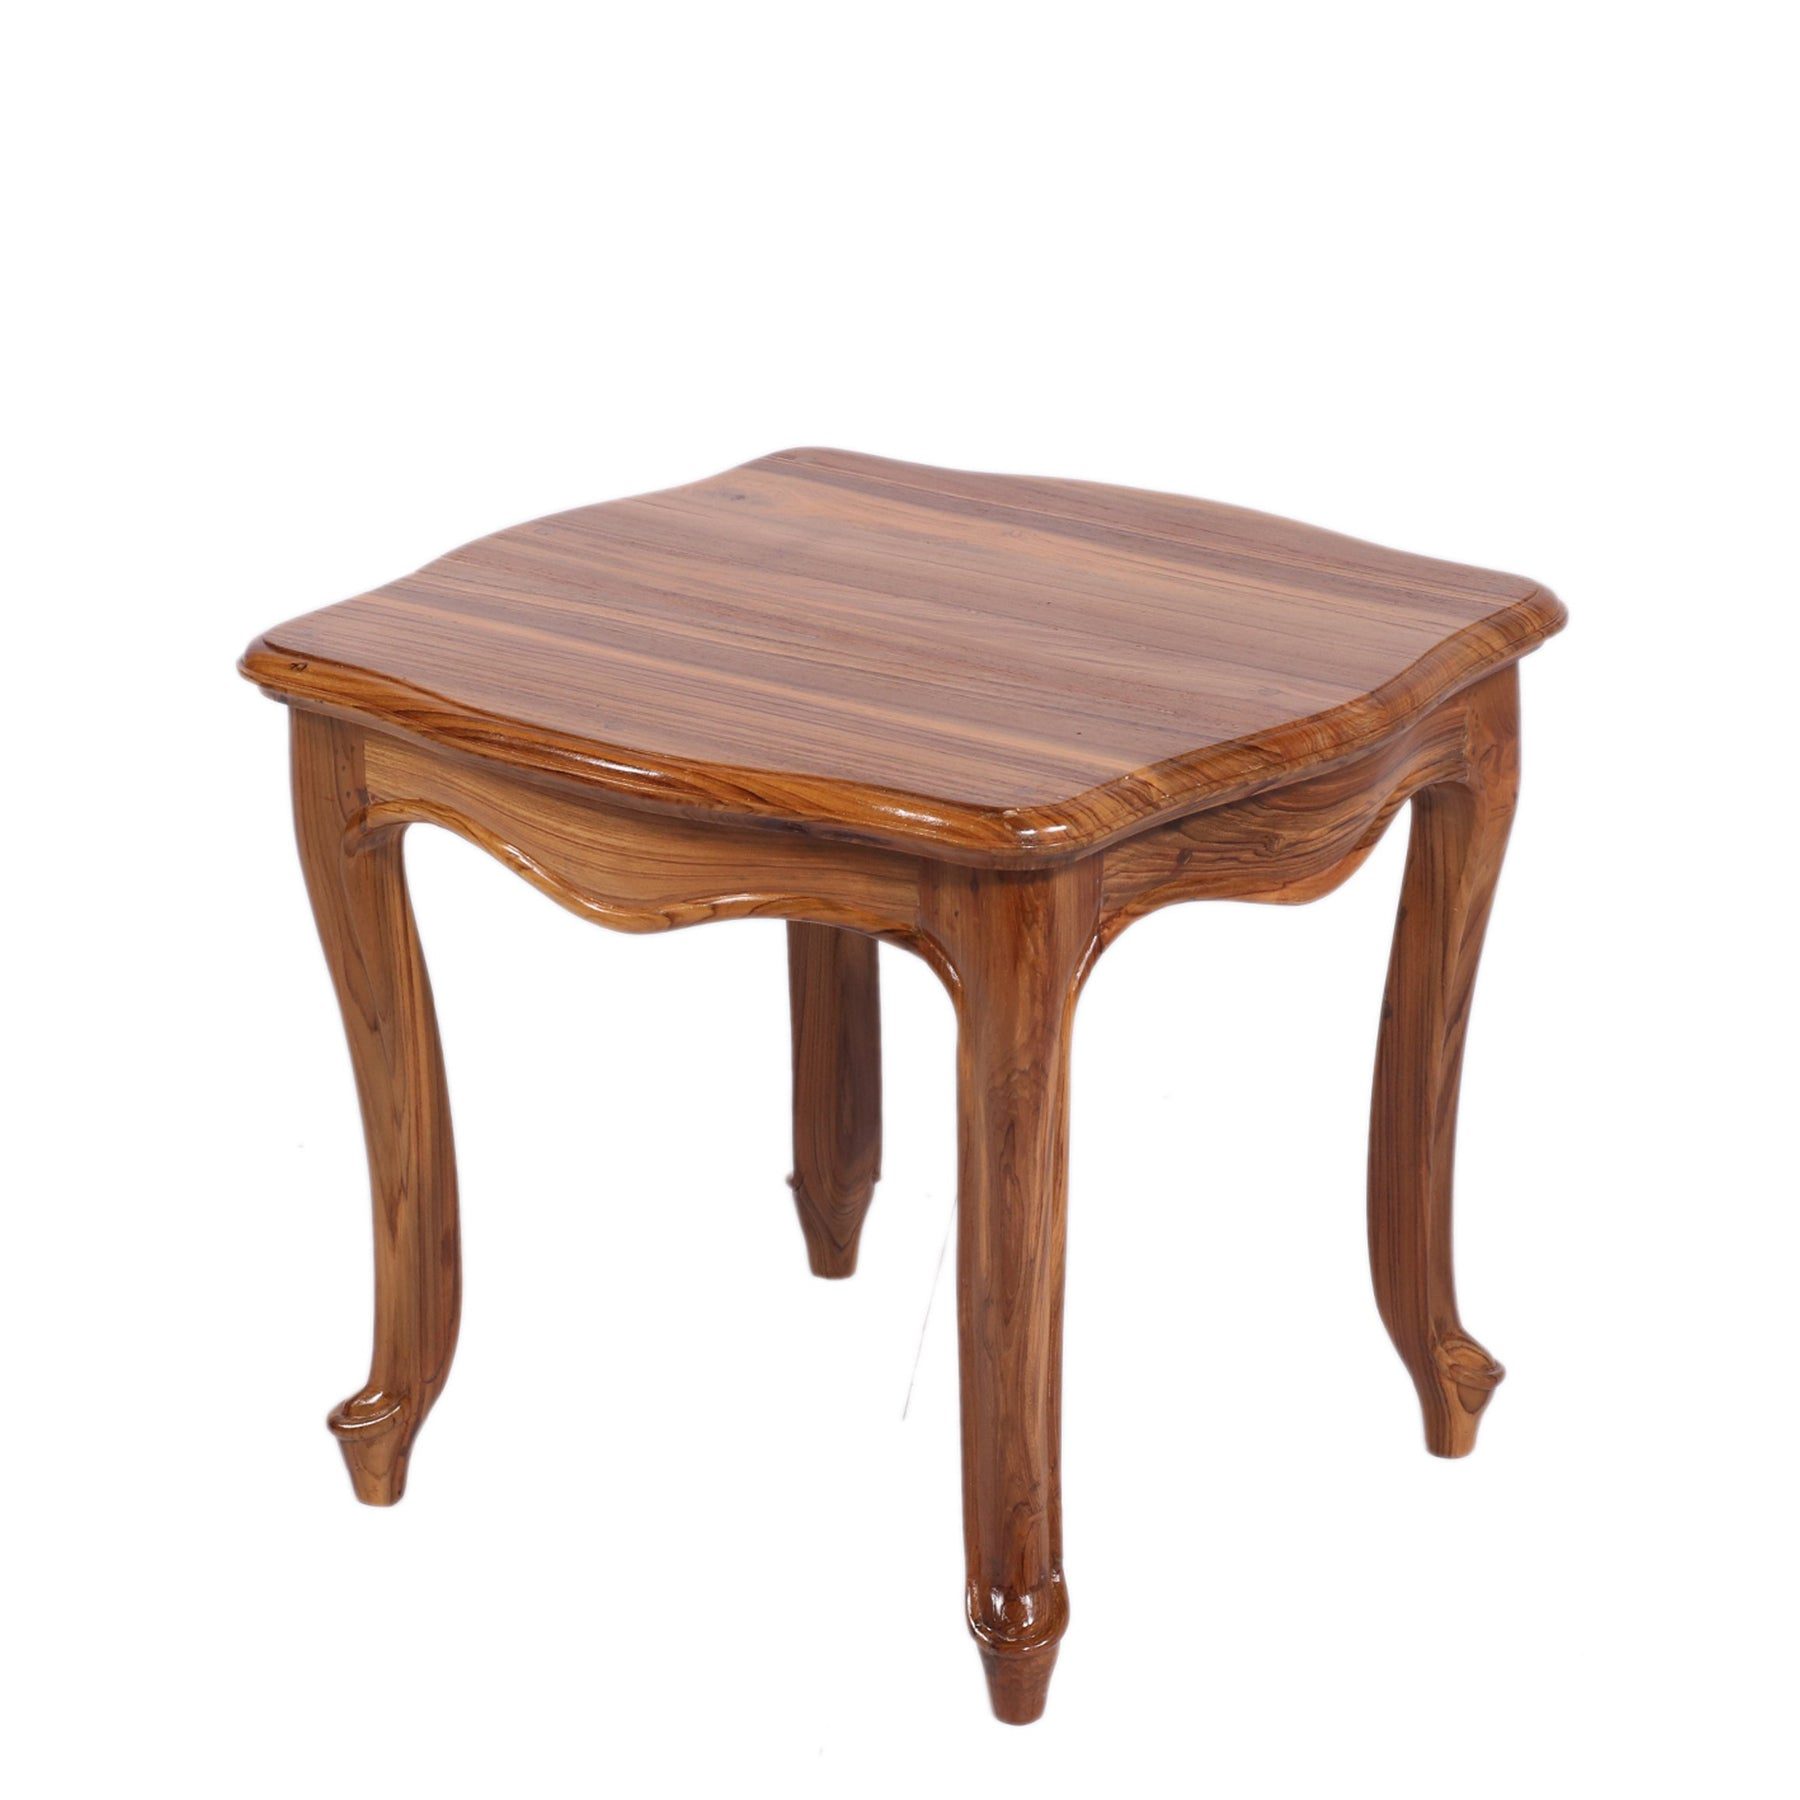 Rectangular Teak Wood Coffee Table